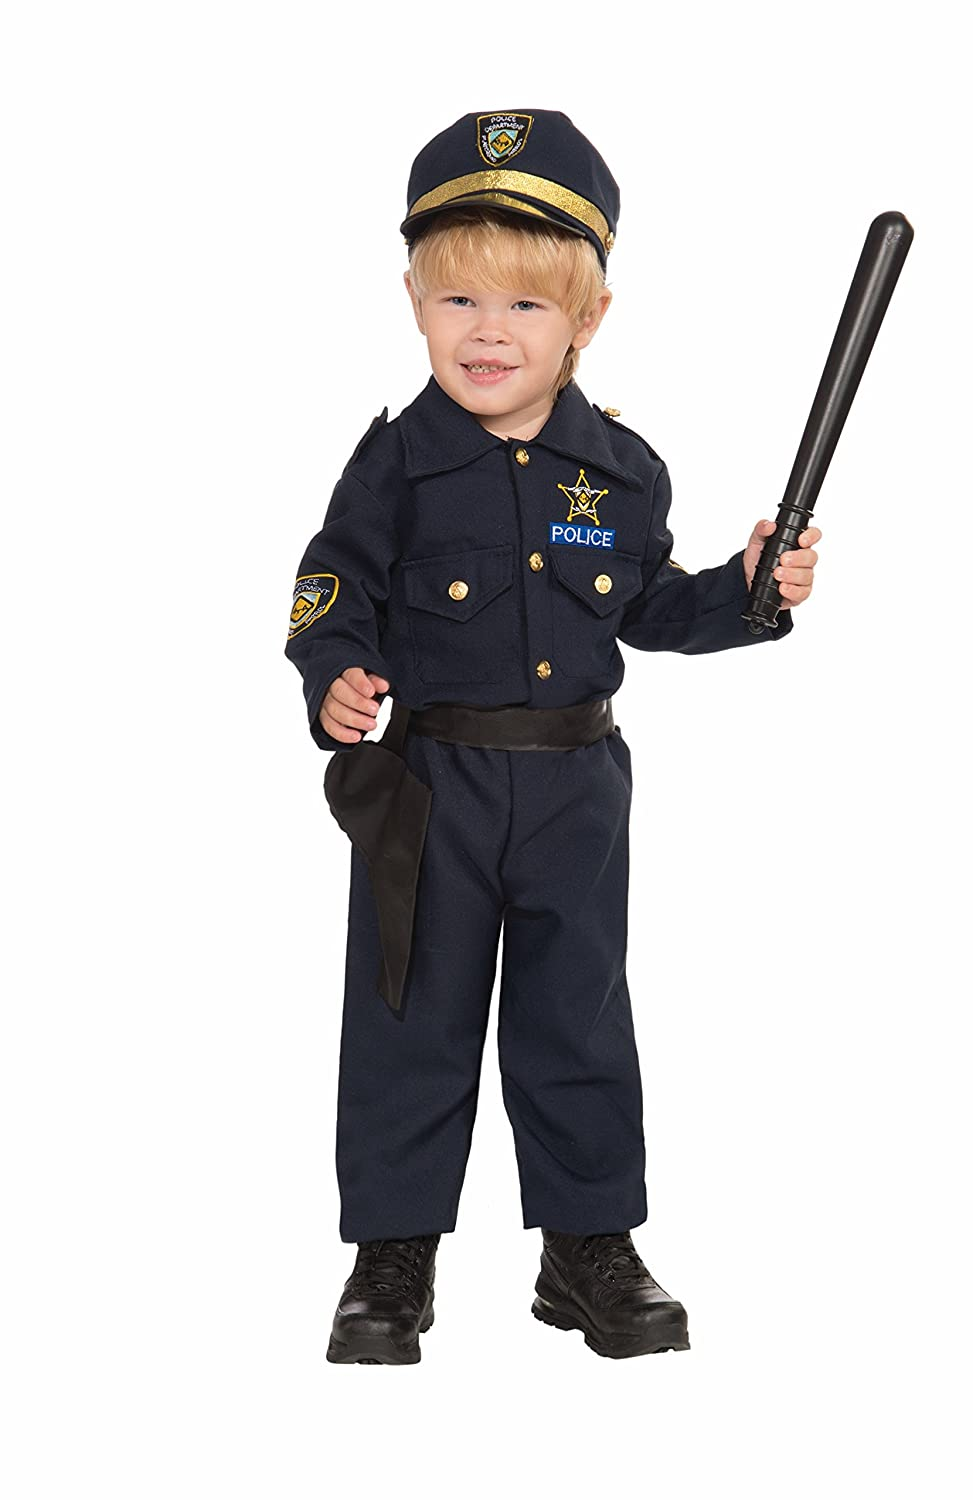 Amazon.com Forum Novelties Baby Boyu0027s Police Boy Toddler Costume Navy 2-4 Toddler Clothing  sc 1 st  Amazon.com & Amazon.com: Forum Novelties Baby Boyu0027s Police Boy Toddler Costume ...